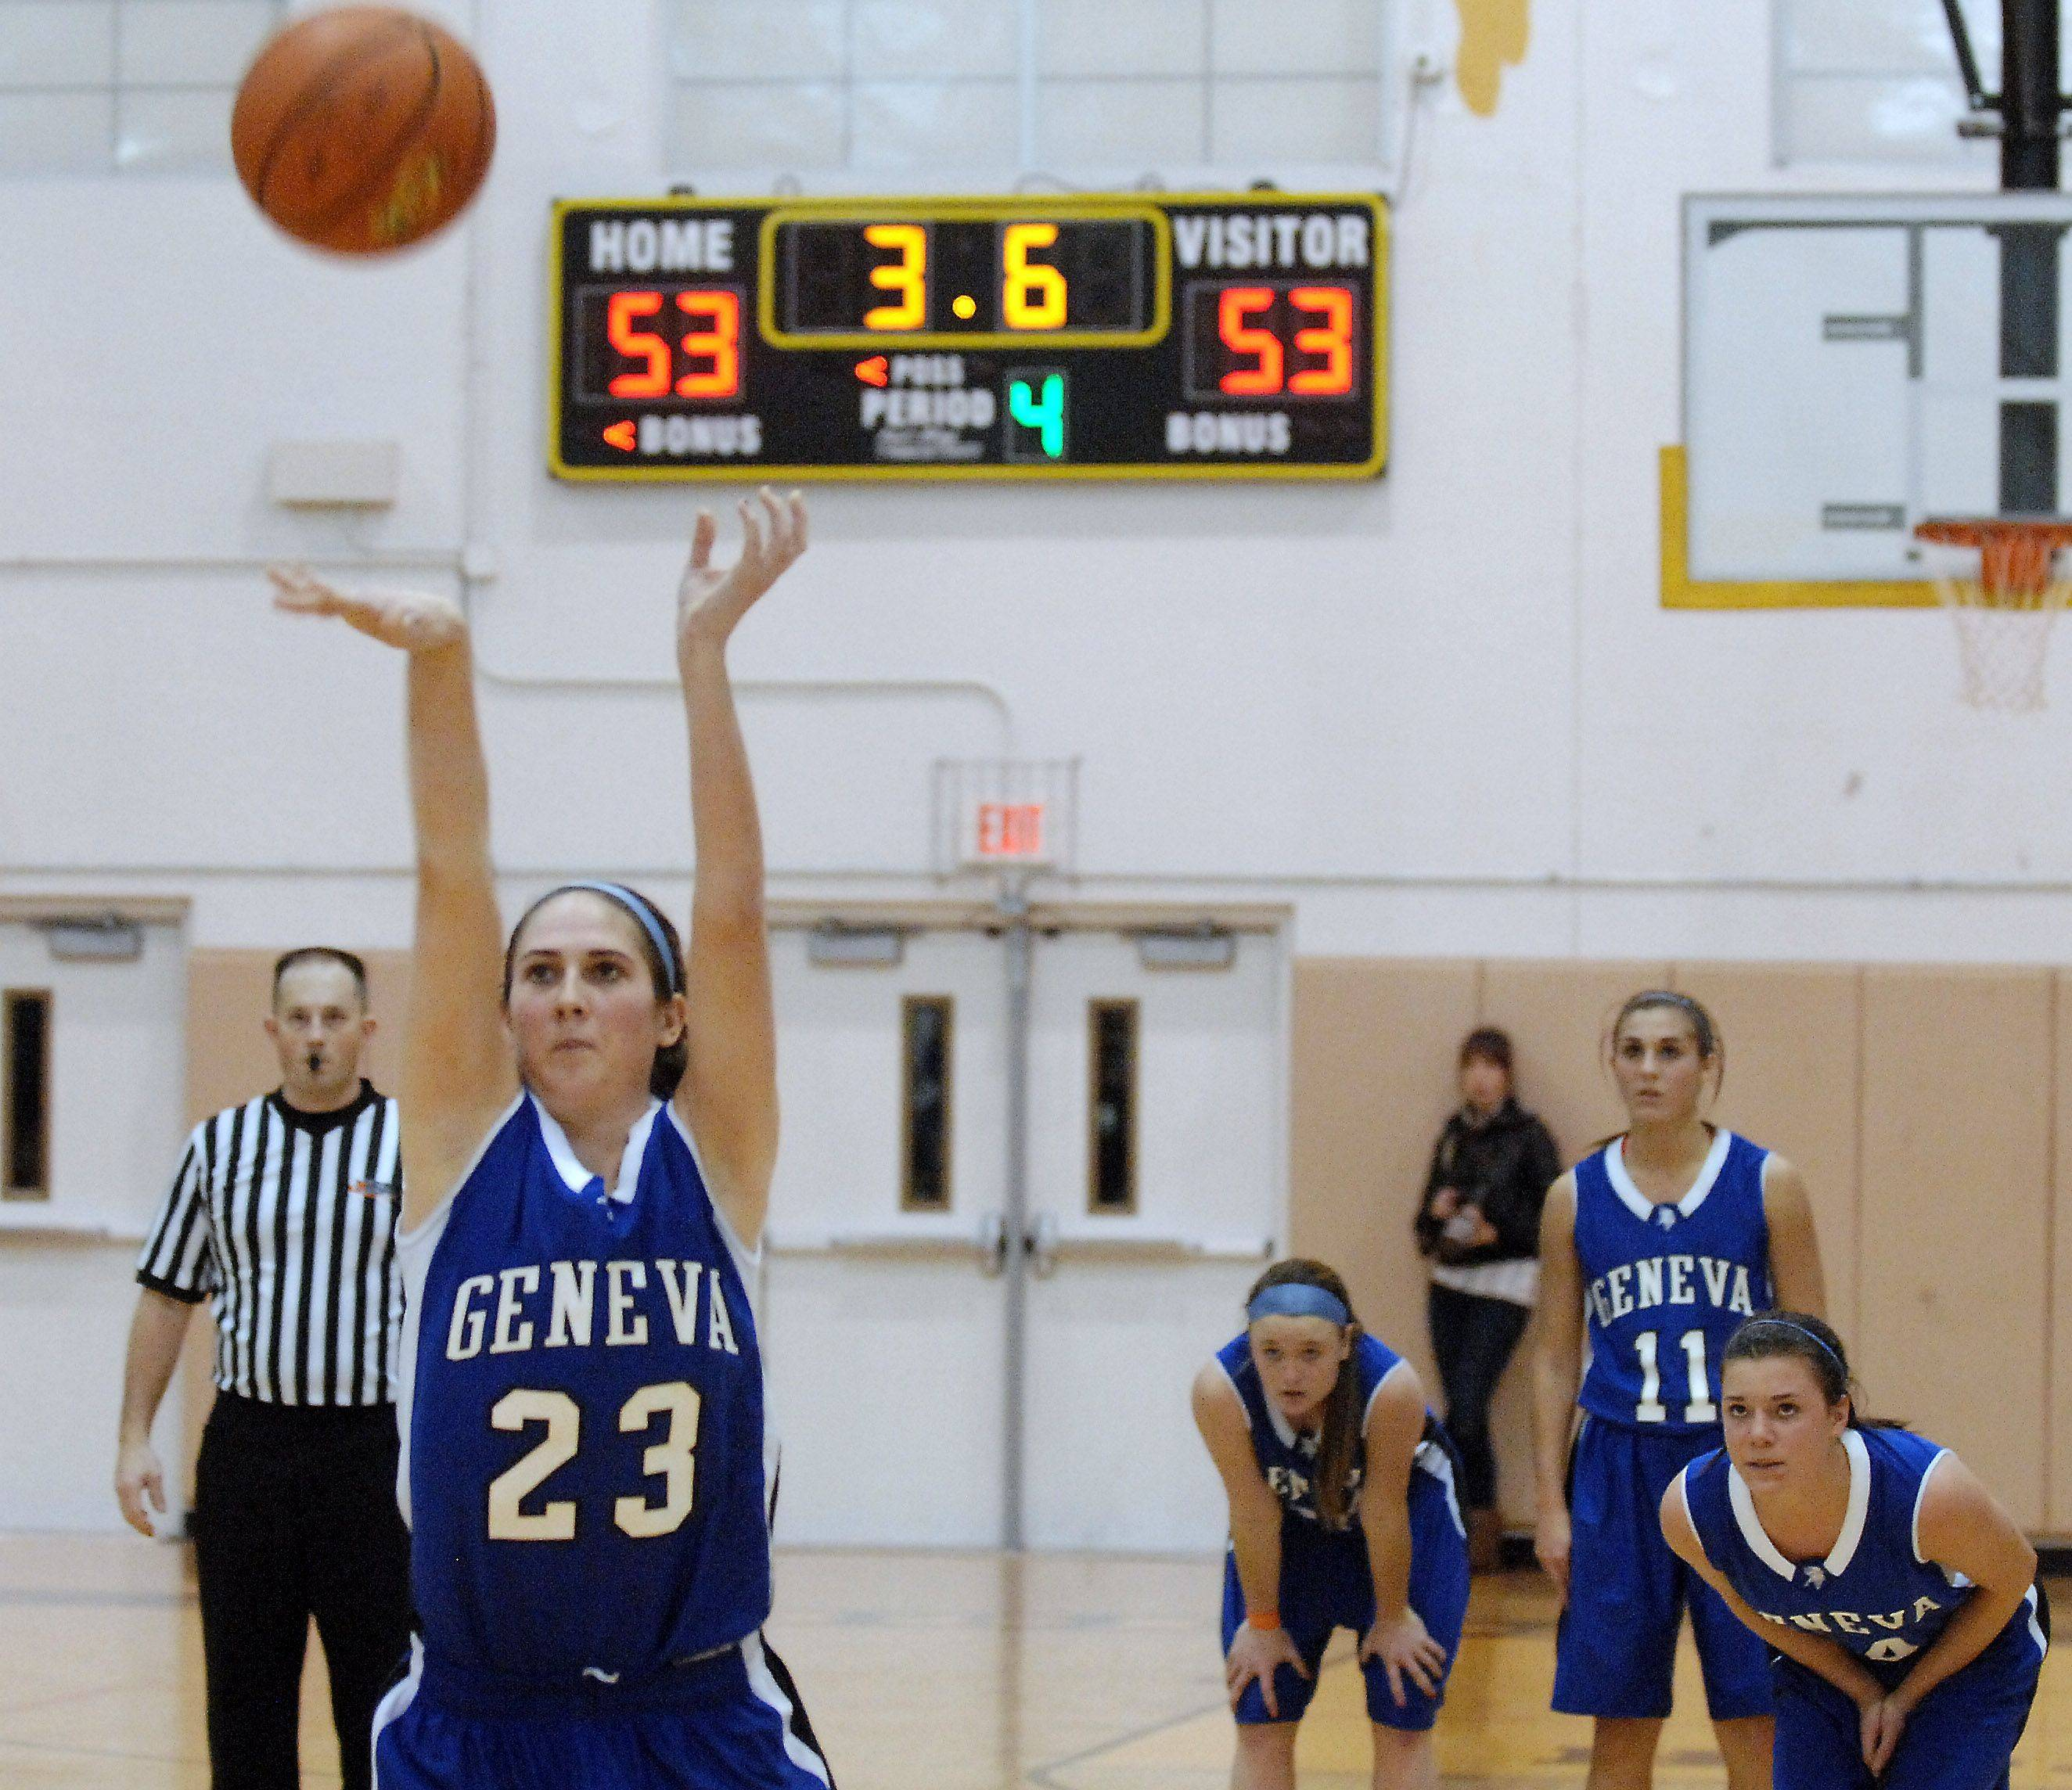 Geneva's Katelyn Allen sinks the deciding free throw with 3.6 seconds left to lift the Vikings over Cary-Grove .